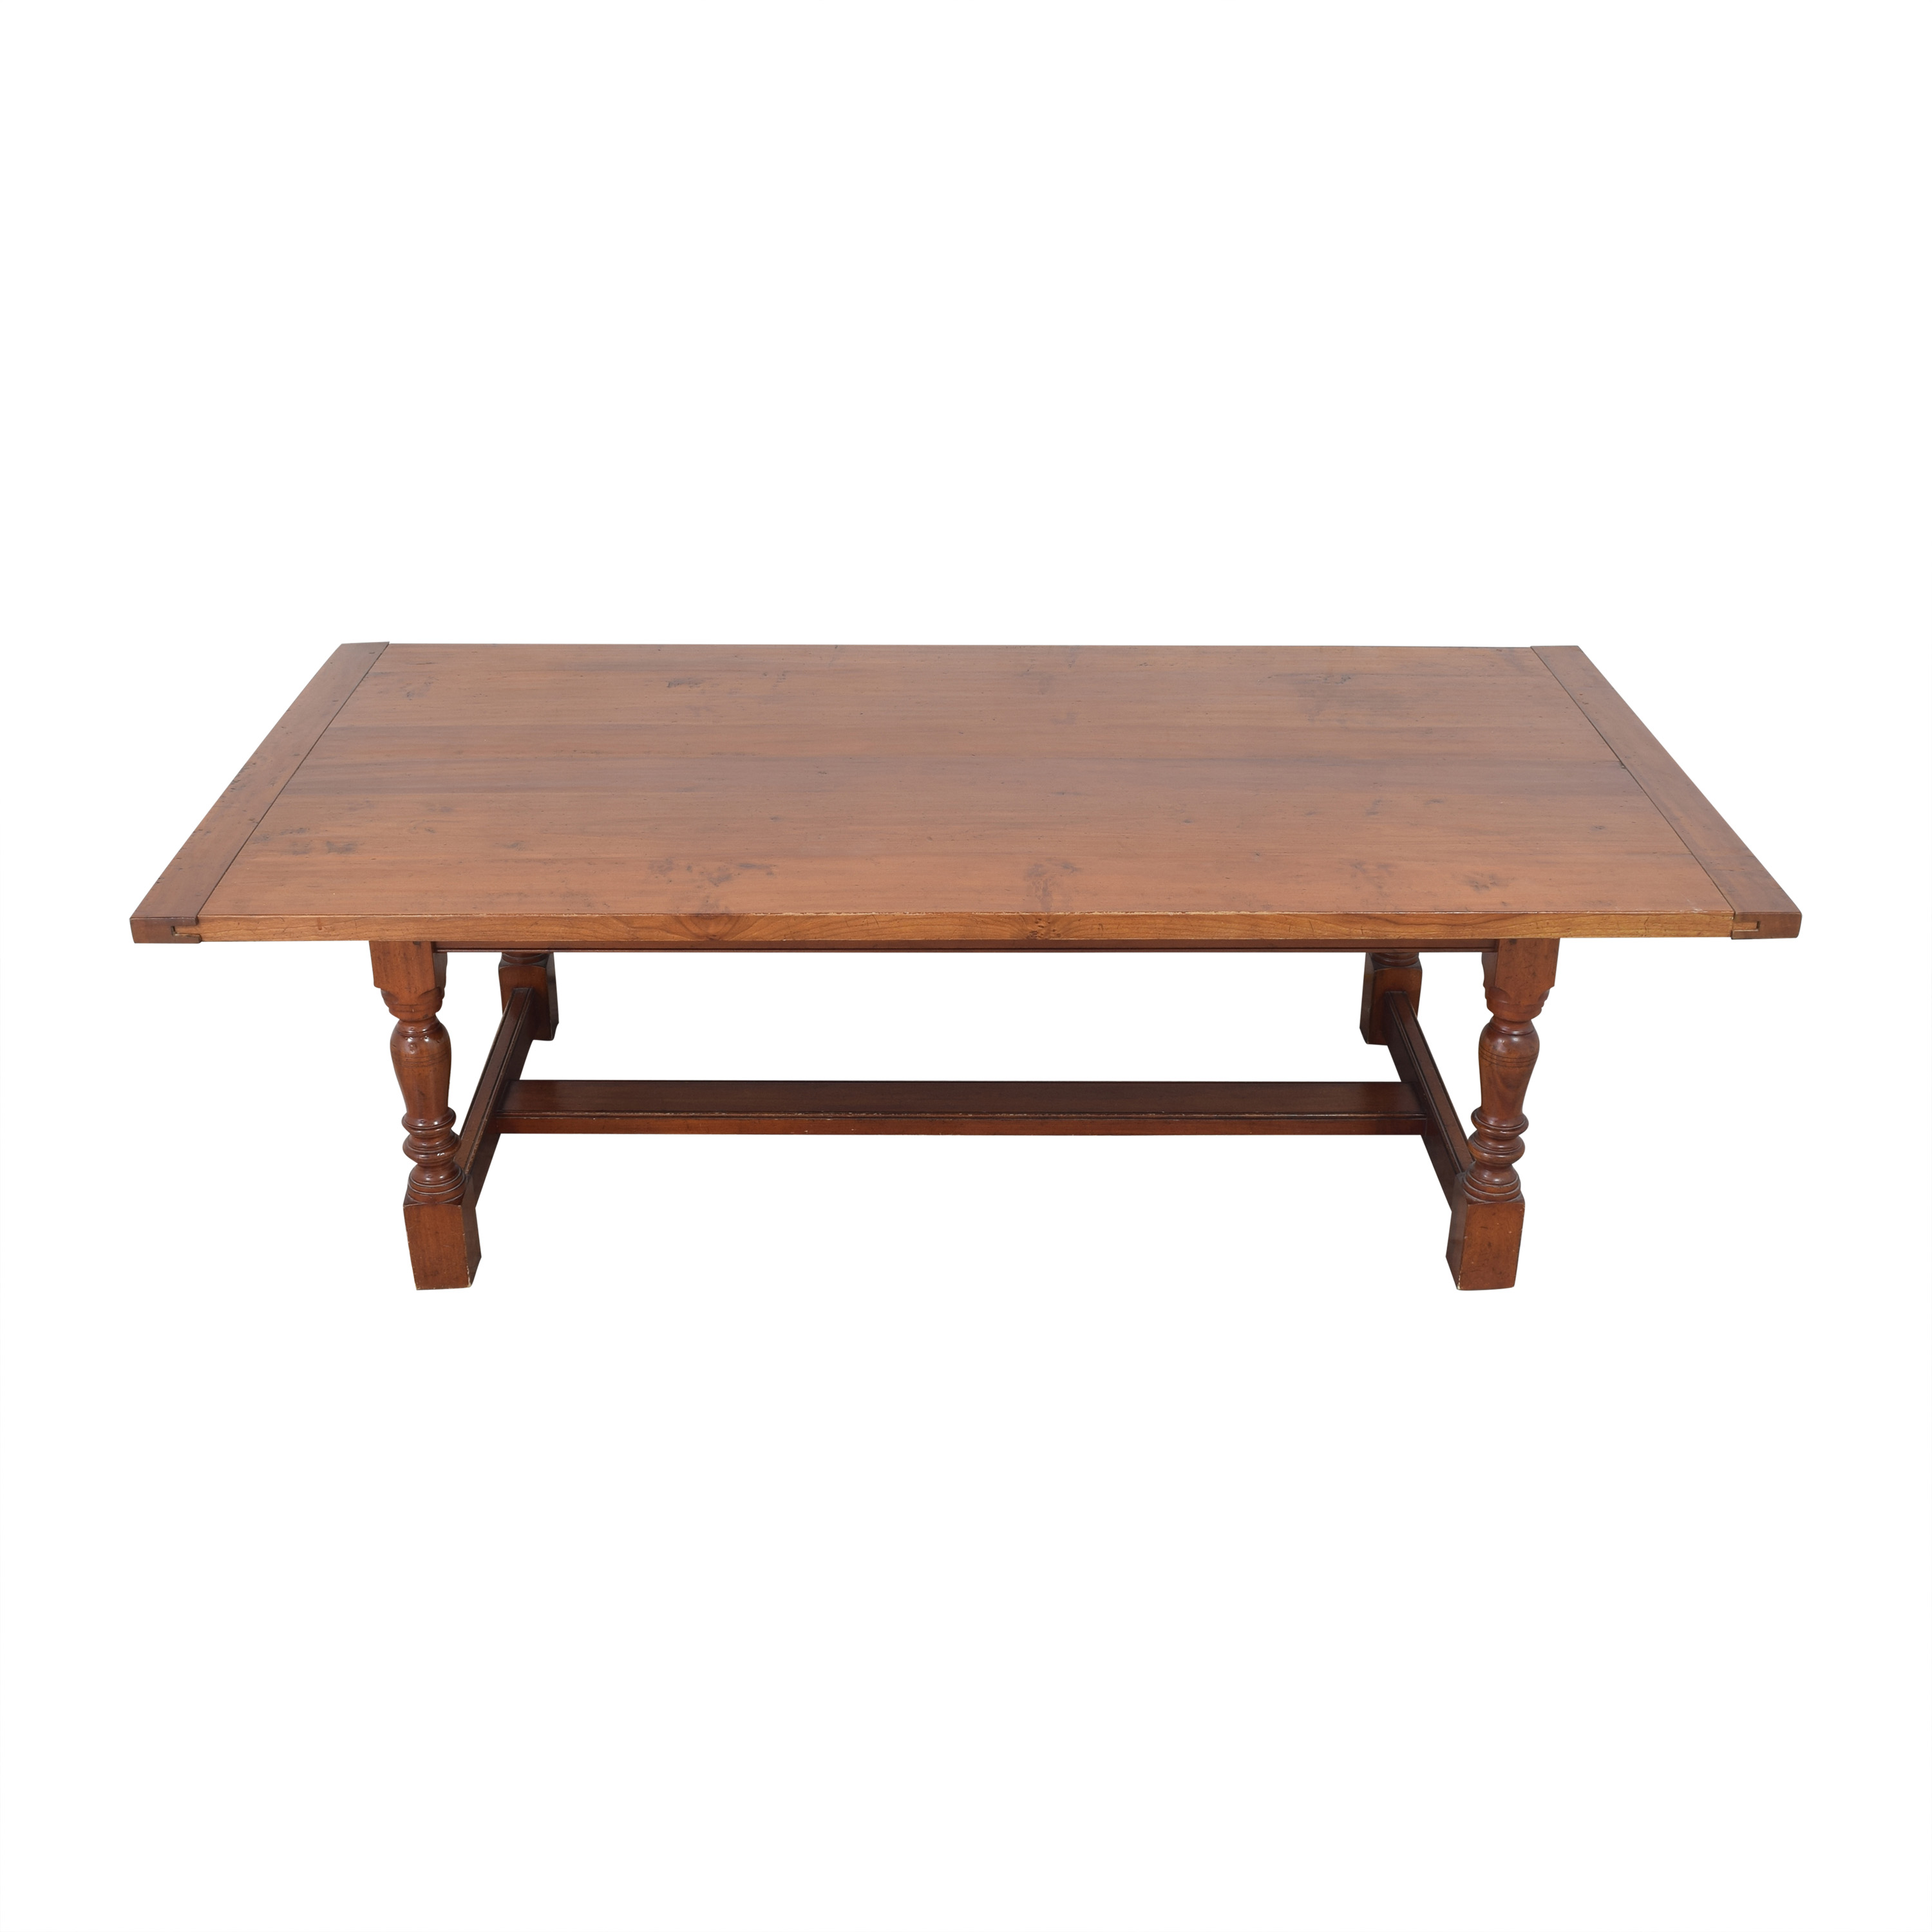 Antique Farmhouse-Style Dining Table dimensions